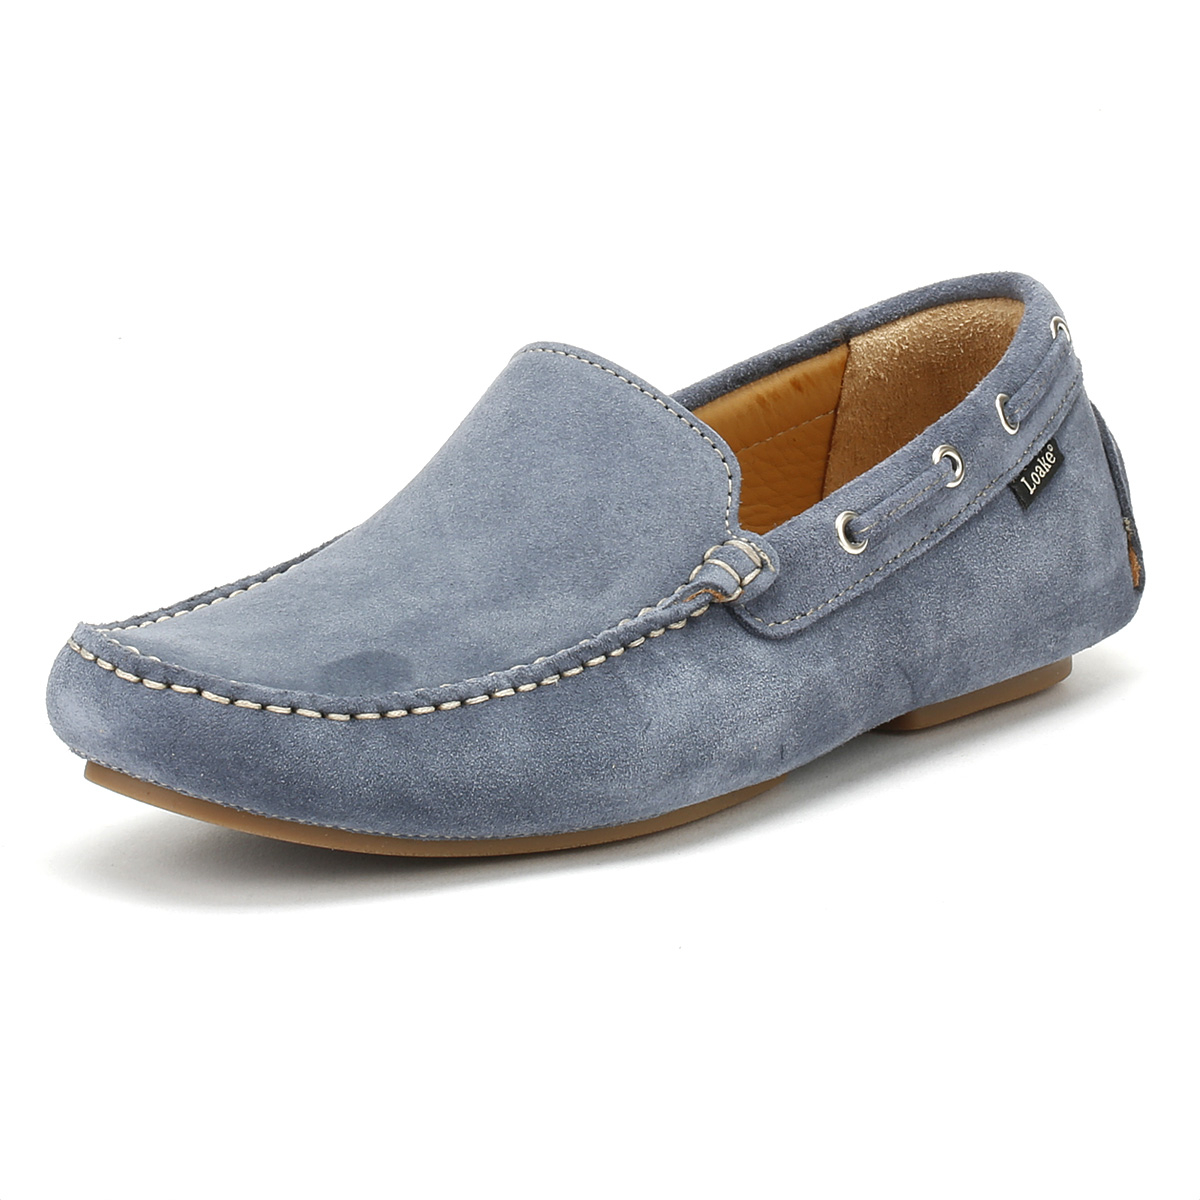 628879a0 Details about Loake Mens Loafers Light Blue Donington Suede Casual Boat  Moccasin Shoes